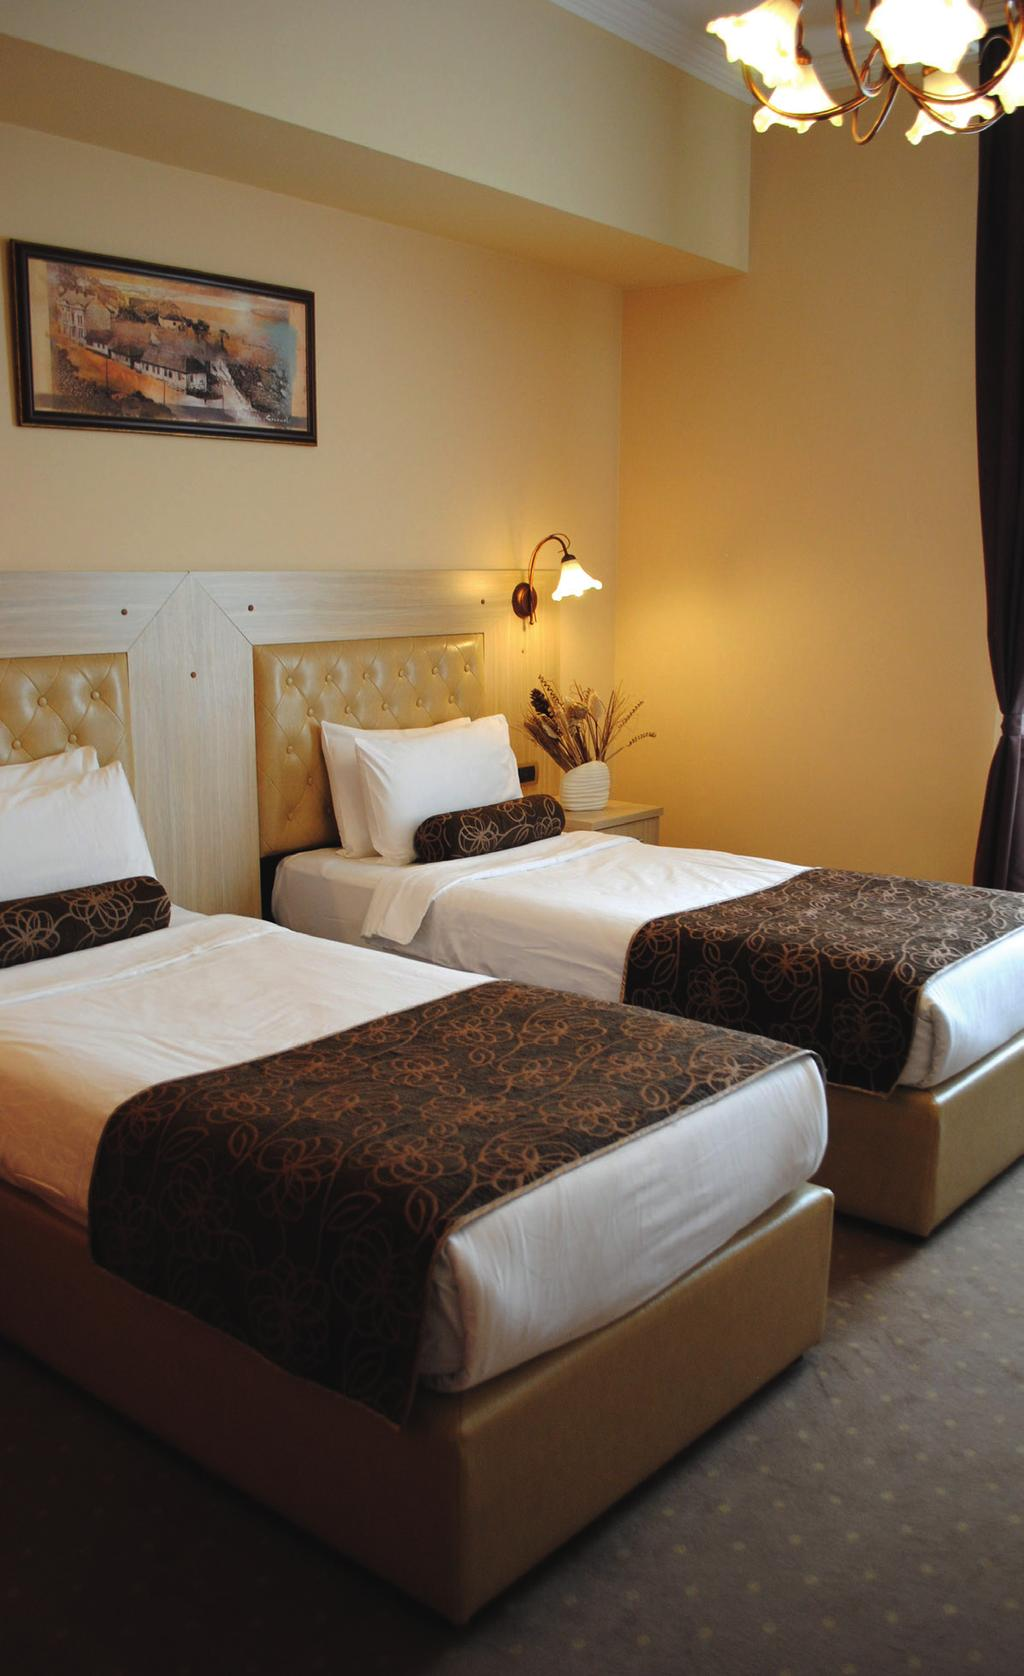 Belgrade City Hotel The welcoming 4-star Belgrade City Hotel in downtown Belgrade, Serbia offers the kind of warm hospitality, inviting atmosphere and top-notch services sure to please business and